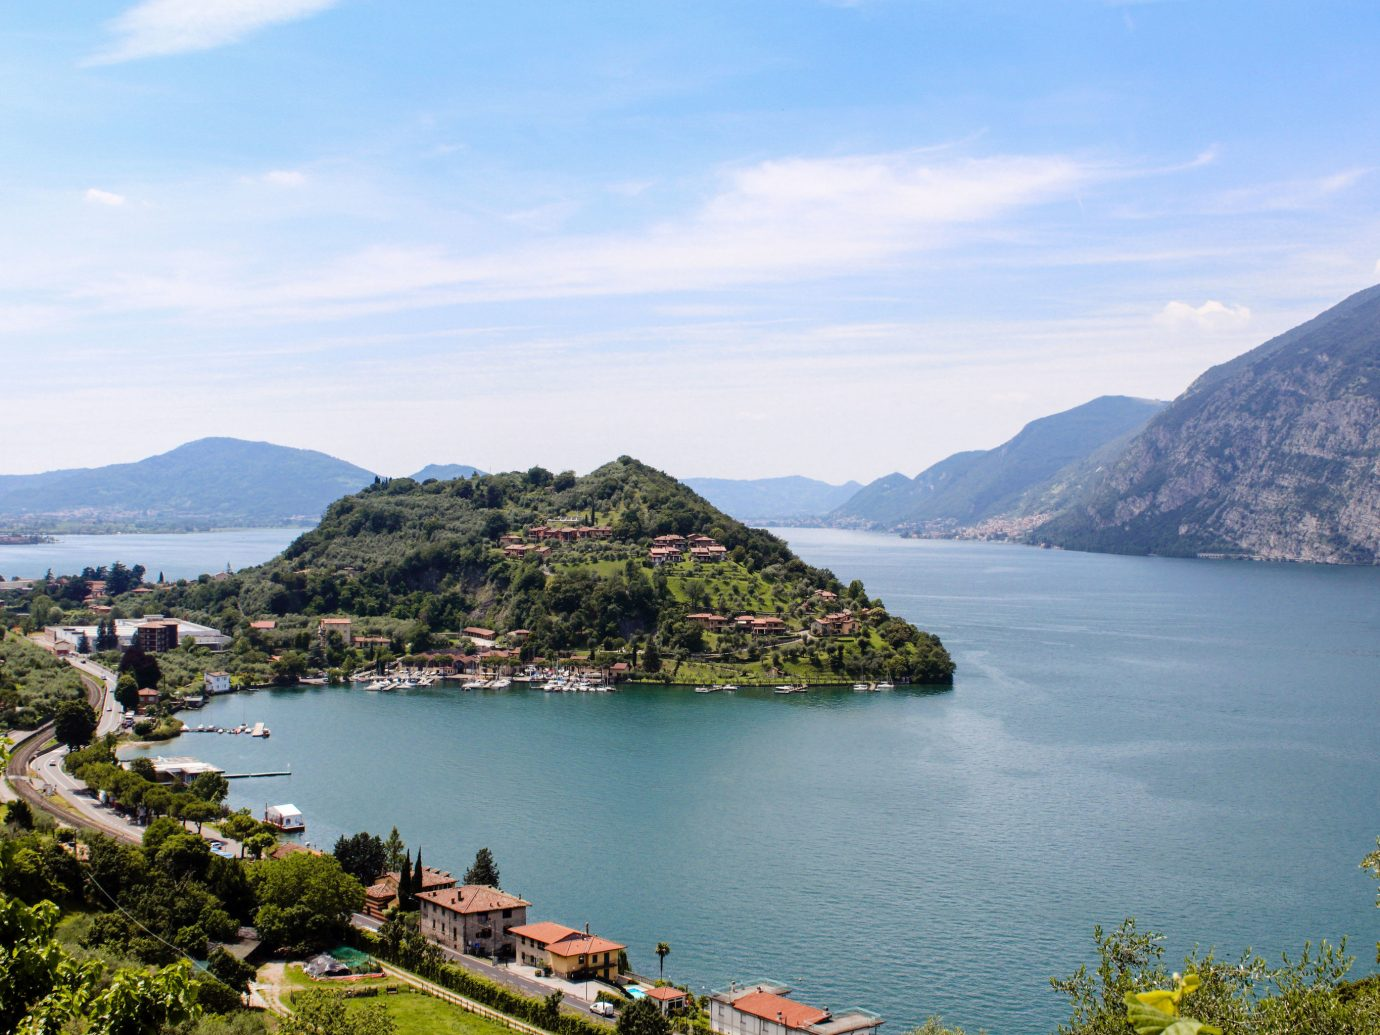 europe Italy Off-the-beaten Path Trip Ideas sky Coast Sea Lake promontory water mount scenery highland mountain reservoir tree bay fjord loch River hill hill station cloud City tourism landscape mountain range cape horizon Village bank plant inlet fell